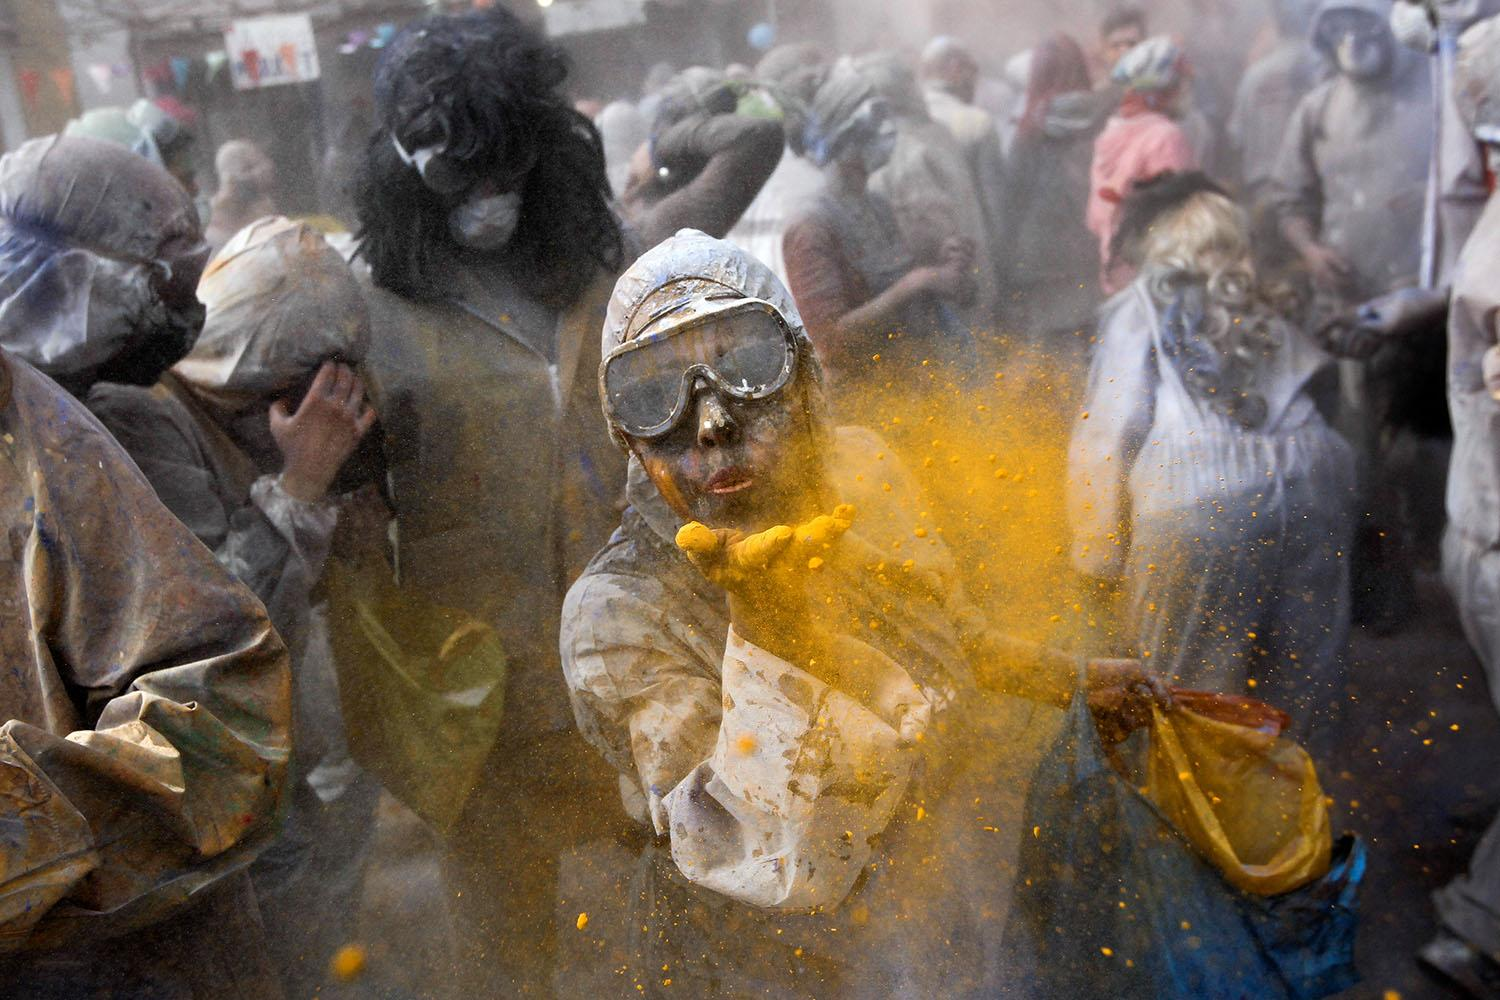 <p>Revelers throw colored flour at each other to celebrate Clean Monday, also known as Ash Monday, in the port town of Galaxidi, Greece, Feb. 27, 2017. Clean Monday is a traditional festivity marking the end of the carnival season and the start of the 40-day Lent period until the Orthodox Easter. (Photo: Alkis Konstantinidis/Reuters) </p>